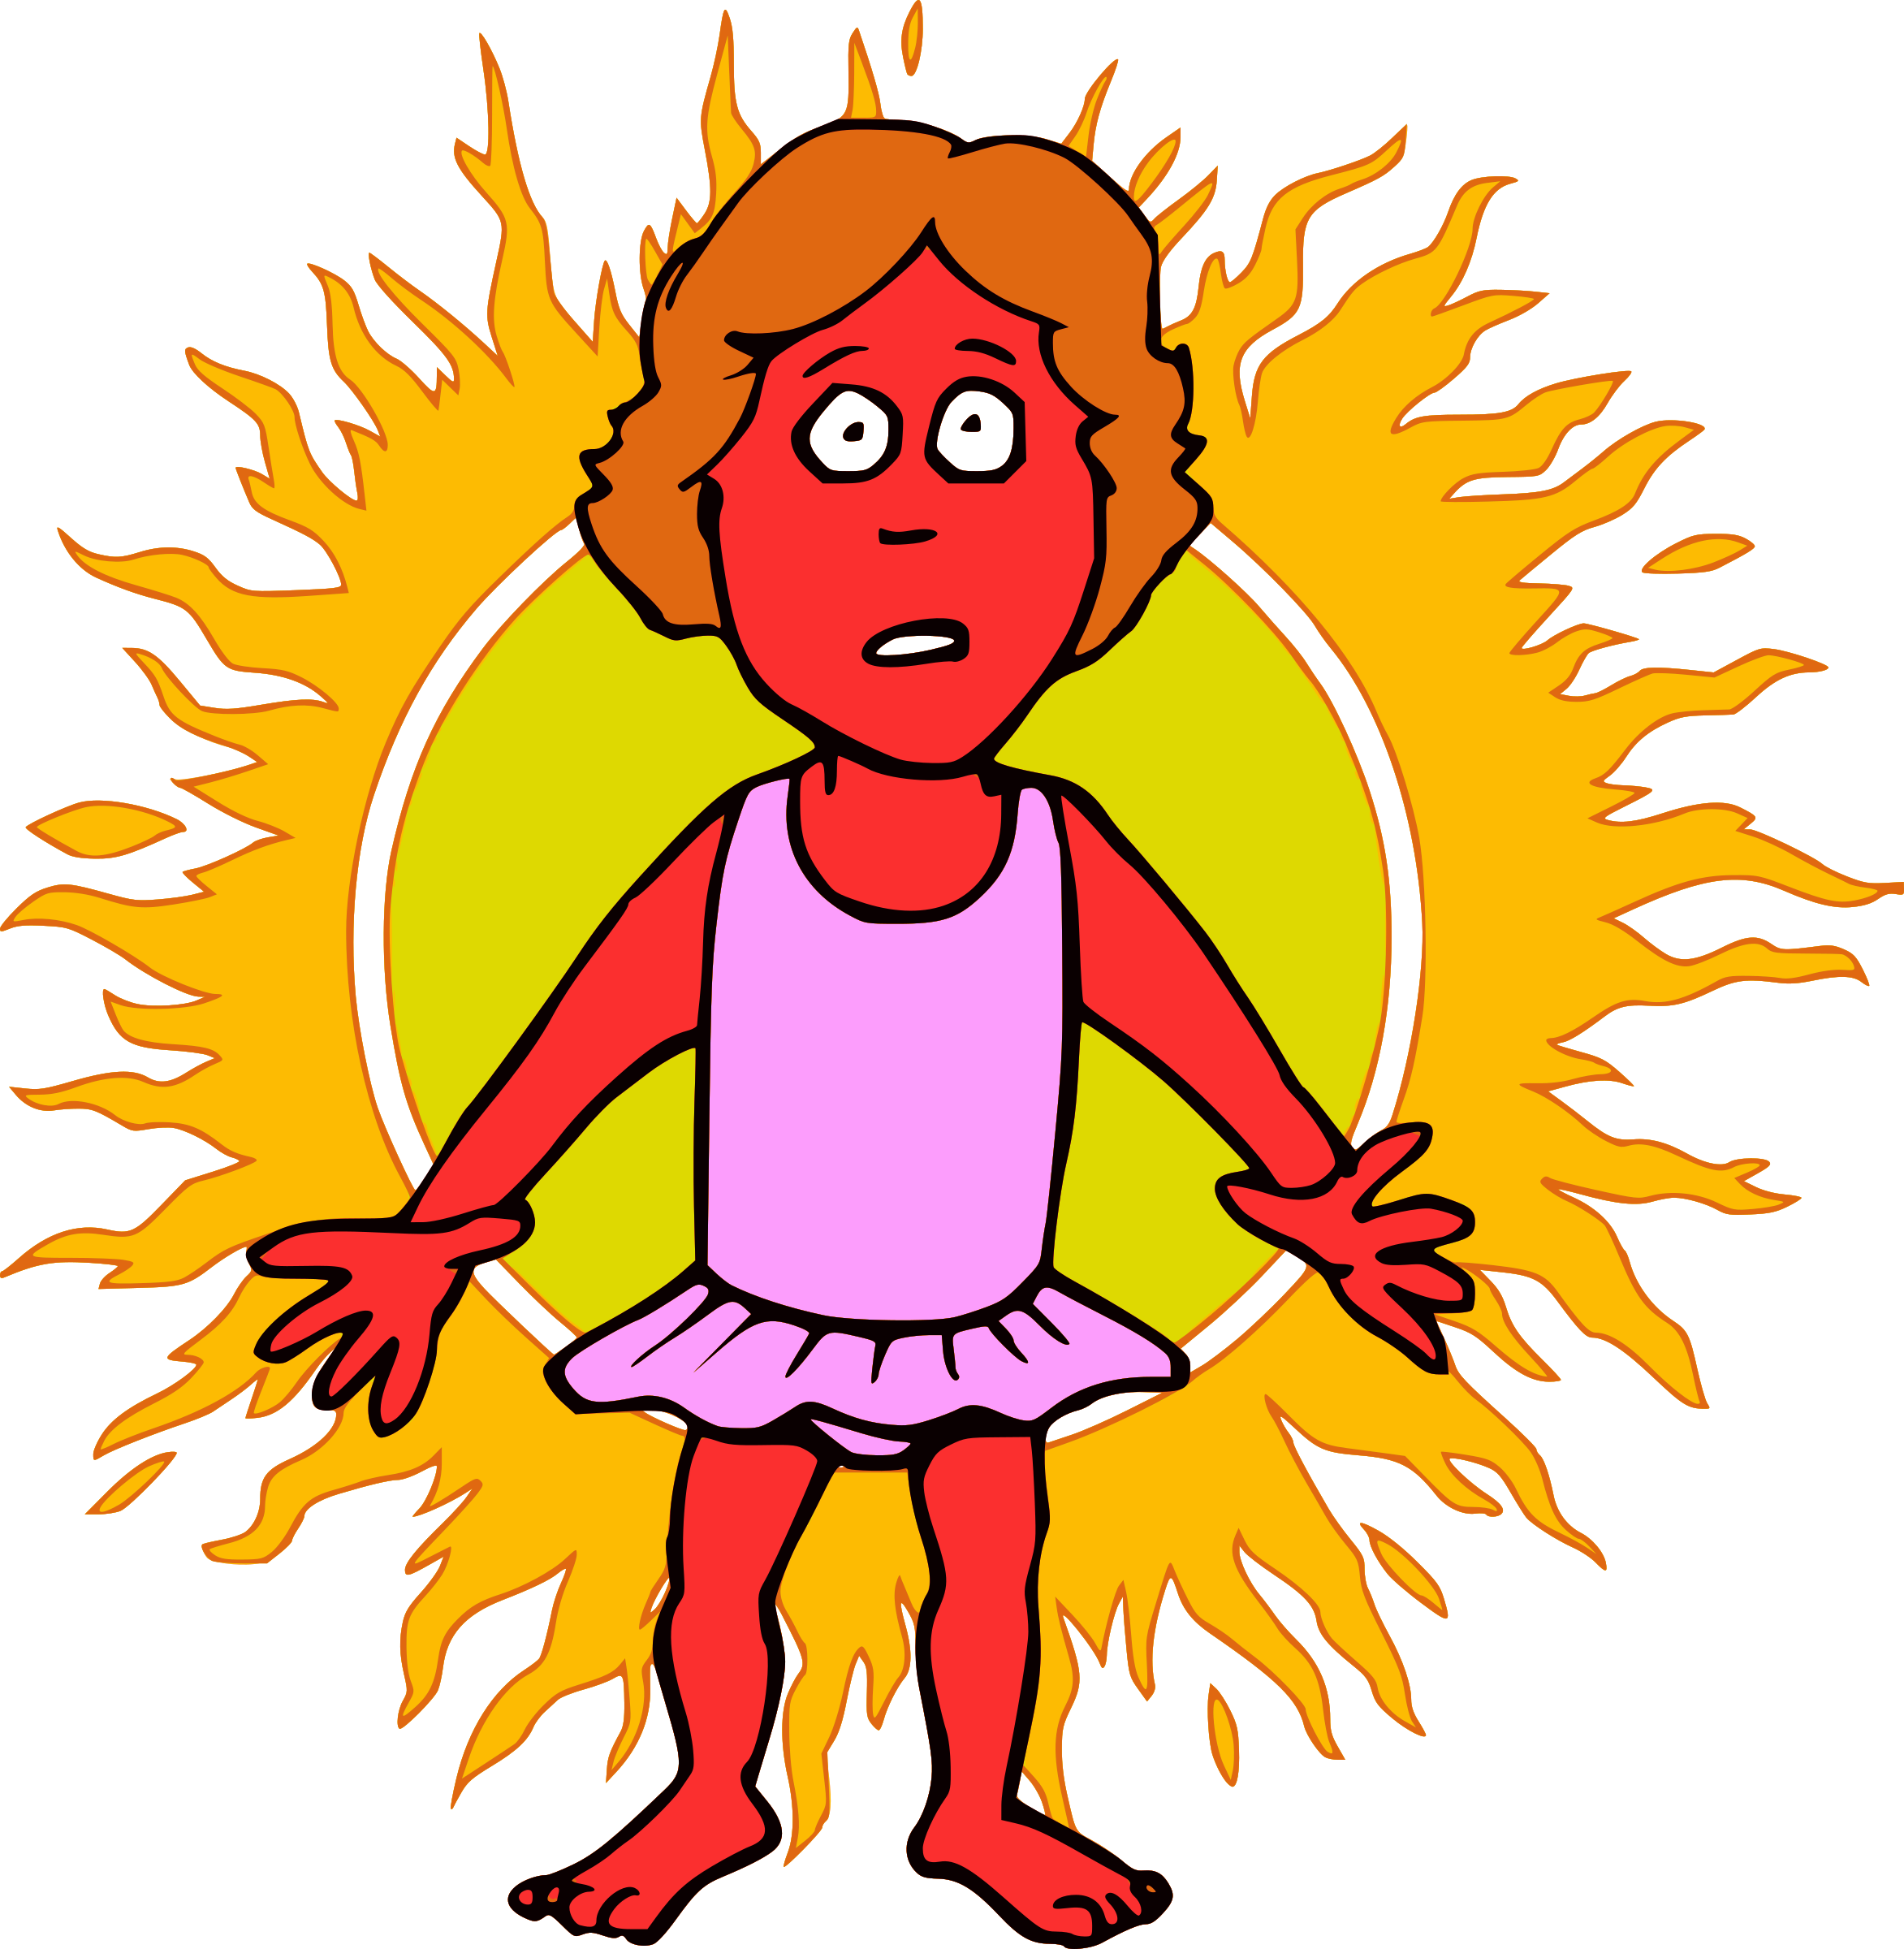 Sun screen clipart graphic library stock What should I do if I have sunburn? - Hollowbrook Foot Specialists graphic library stock